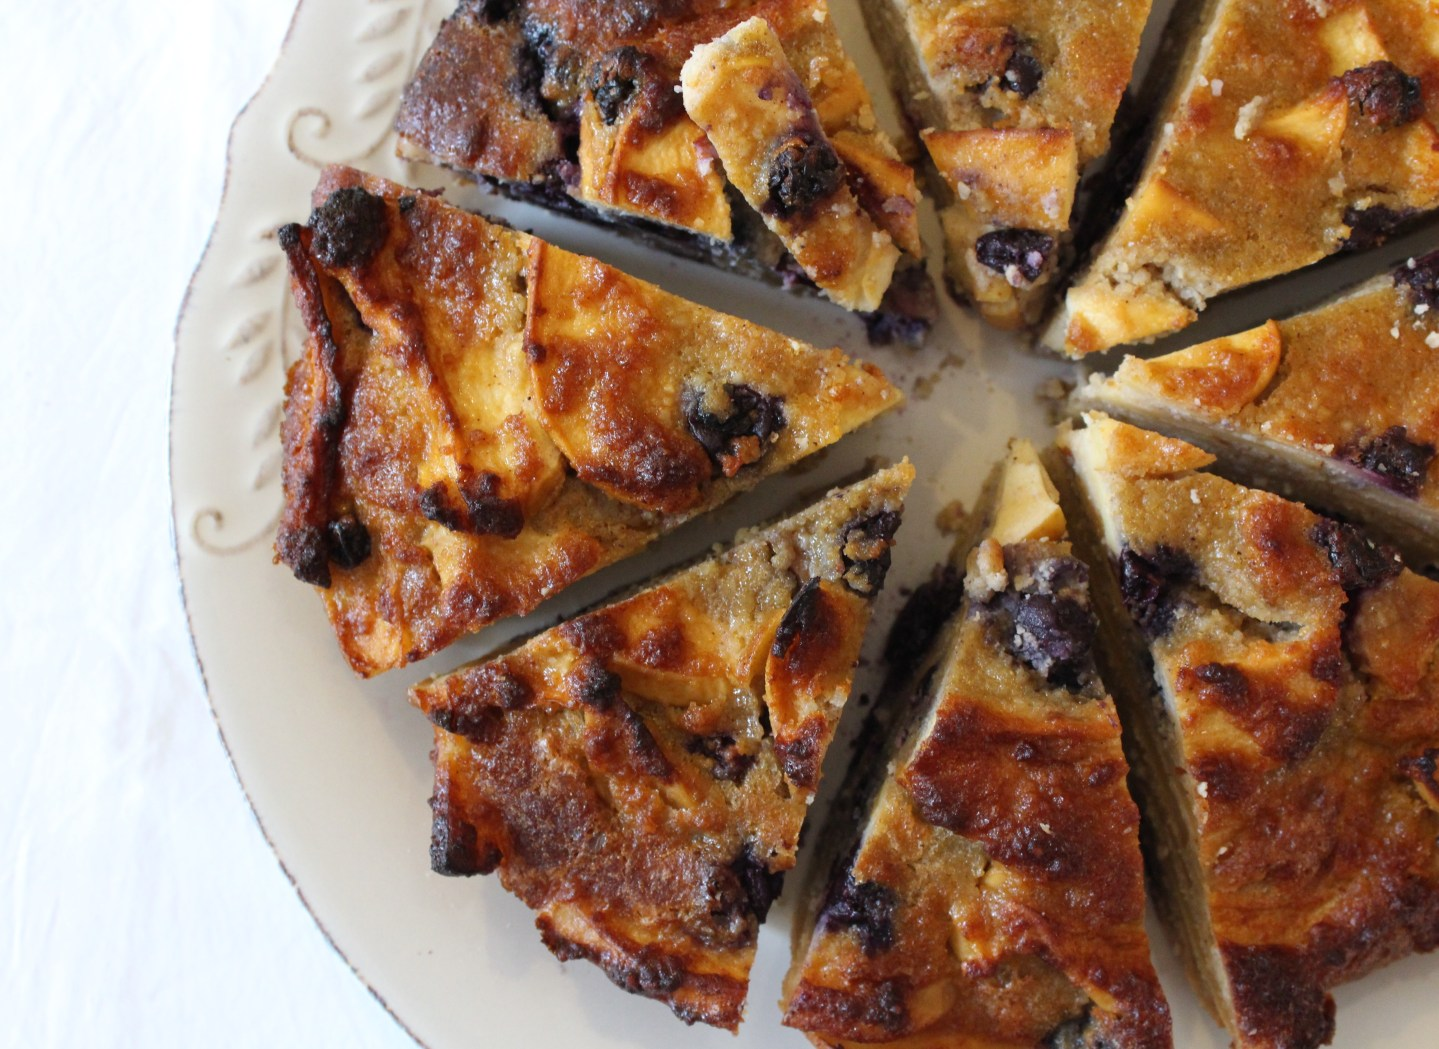 Apple & Blueberry Pie (grain-free, gluten-free, sugar-free, Paleo)